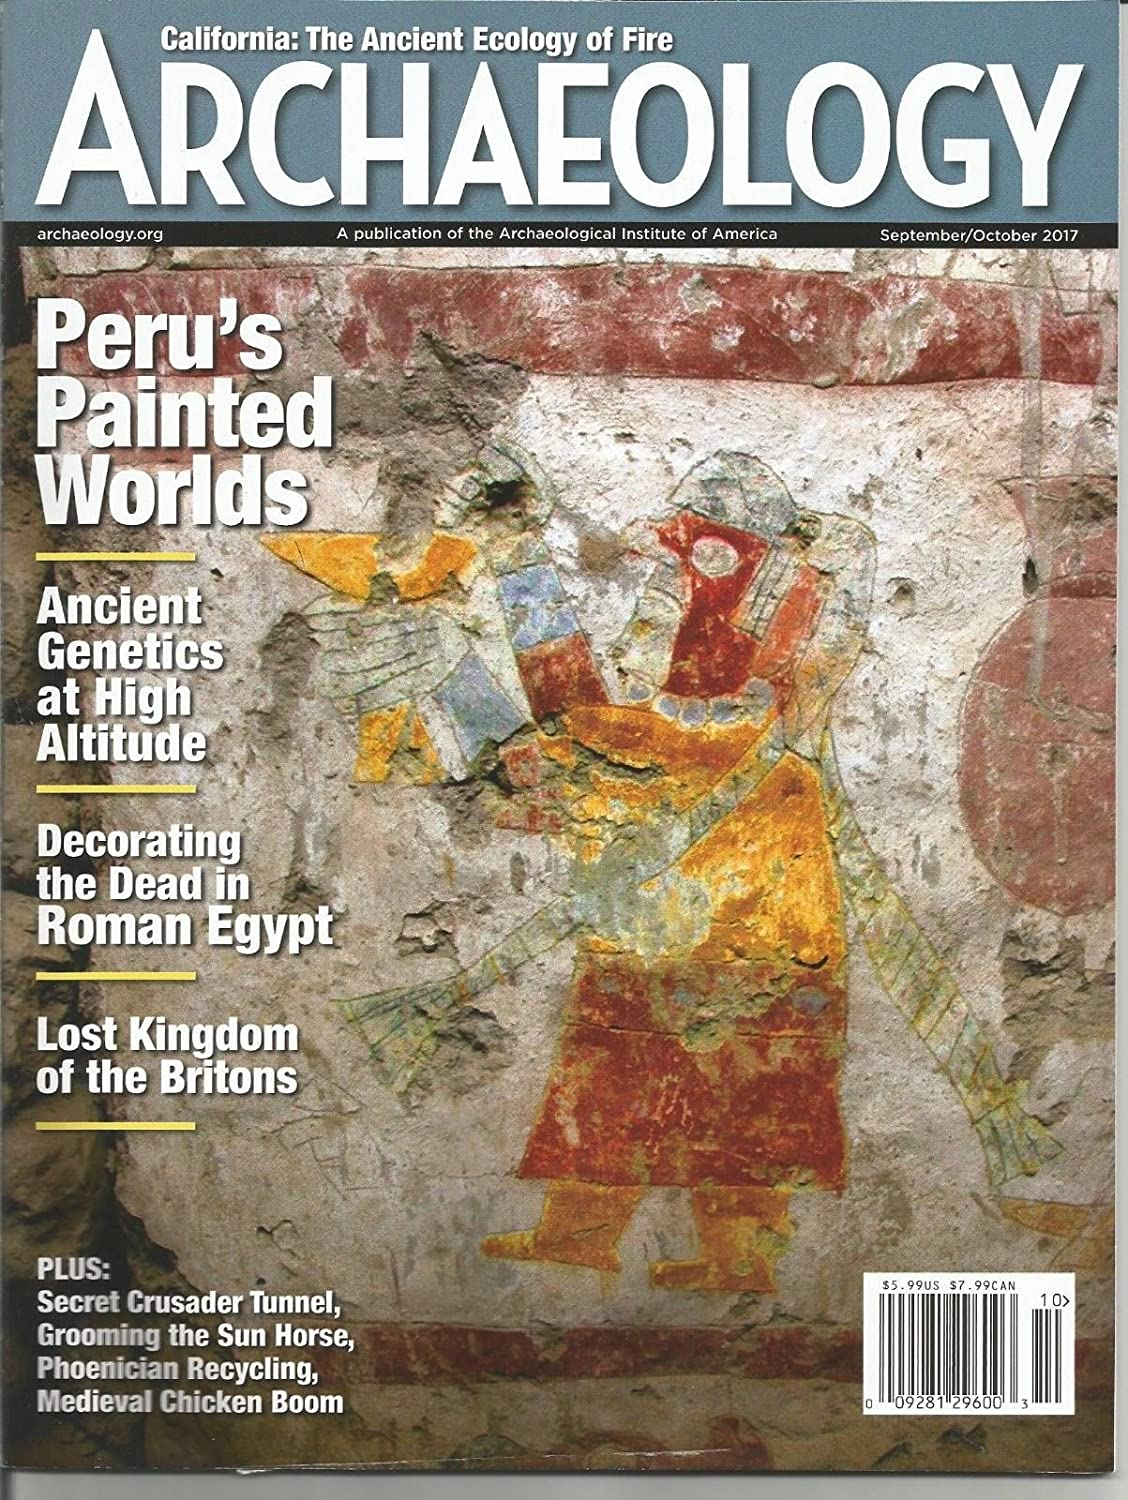 ARCHAEOLOGY, SEPTEMBER / OCTOBER, 2017 (PERU'S PAINTED WORLDS) 2017 (PERU' S PAINTED WORLDS) s3457